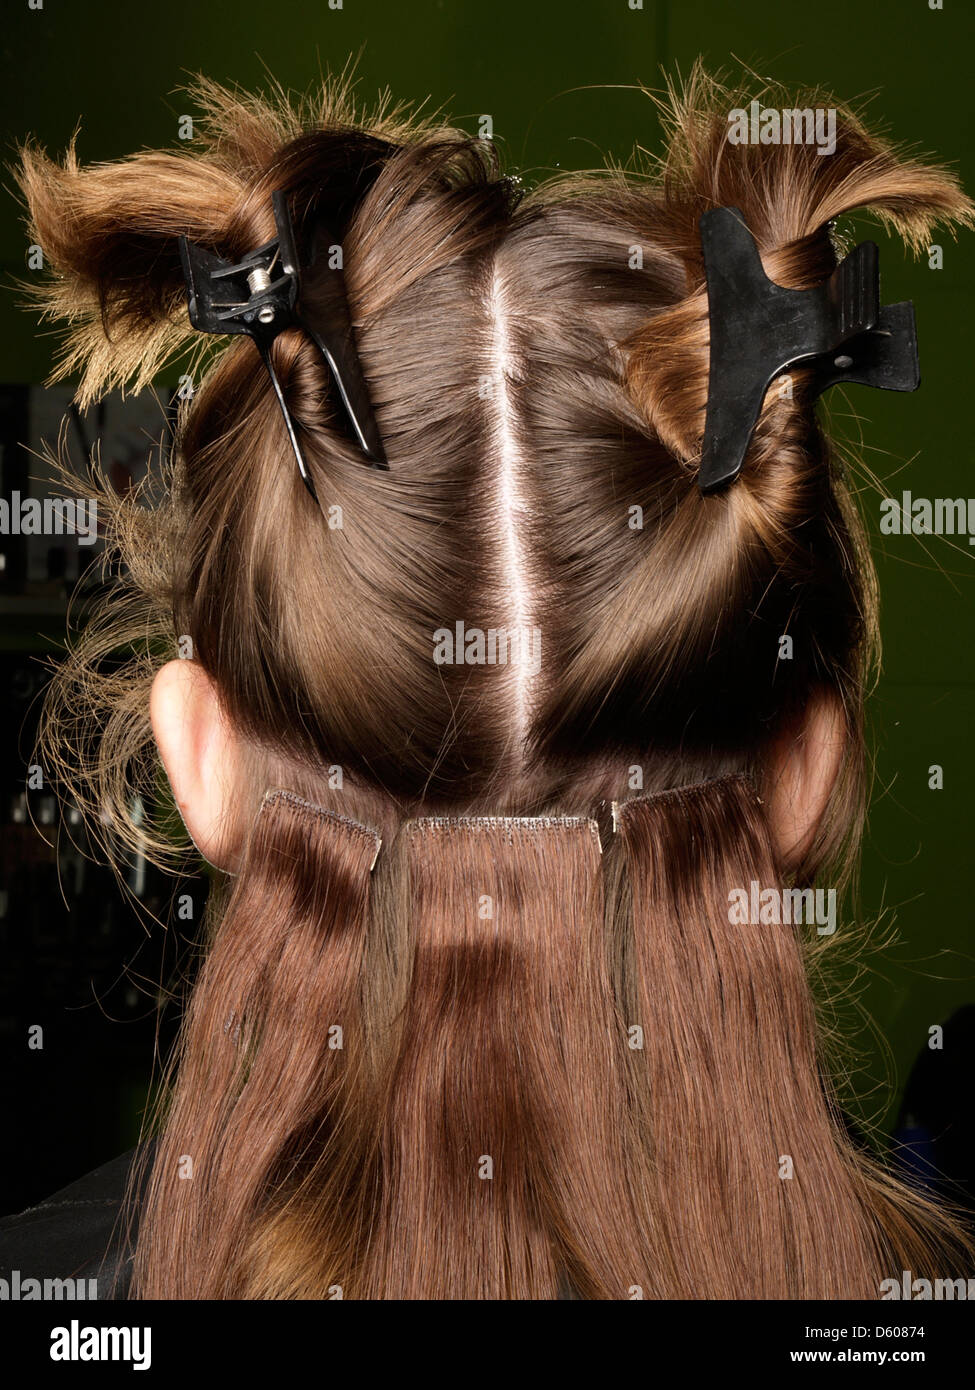 Closeup Of Hair Extensions Being Attached To The Back Of The Head Of